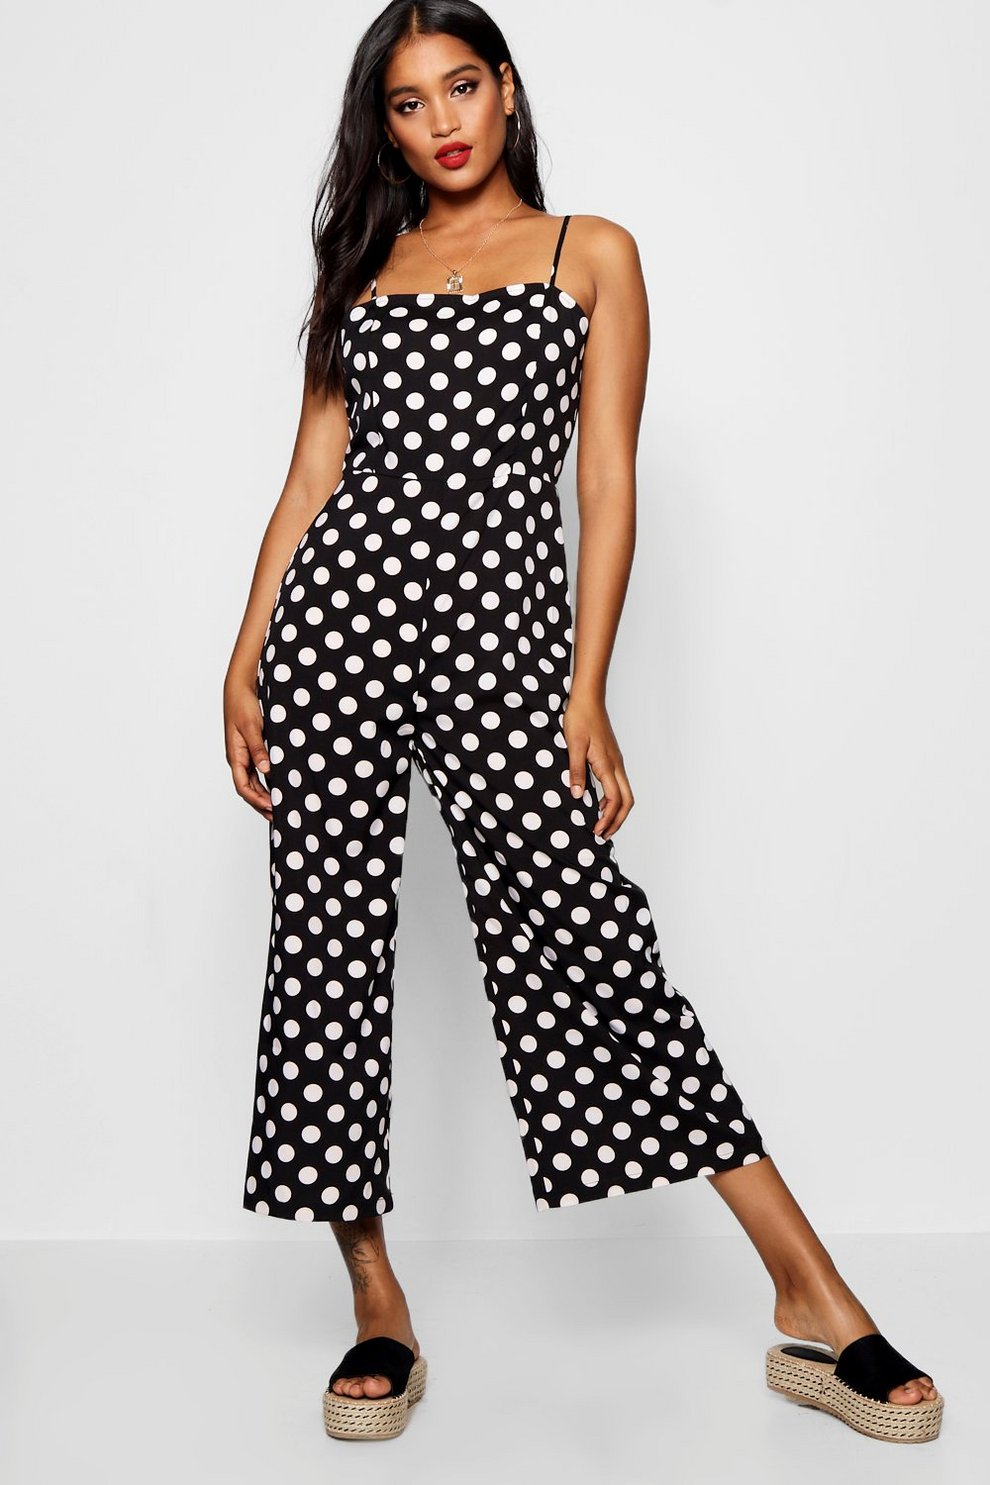 Pre Order Discount Best Store To Get Boohoo Polka Dot Square Neck Jumpsuit Limited Edition Online Fashionable EQl5H